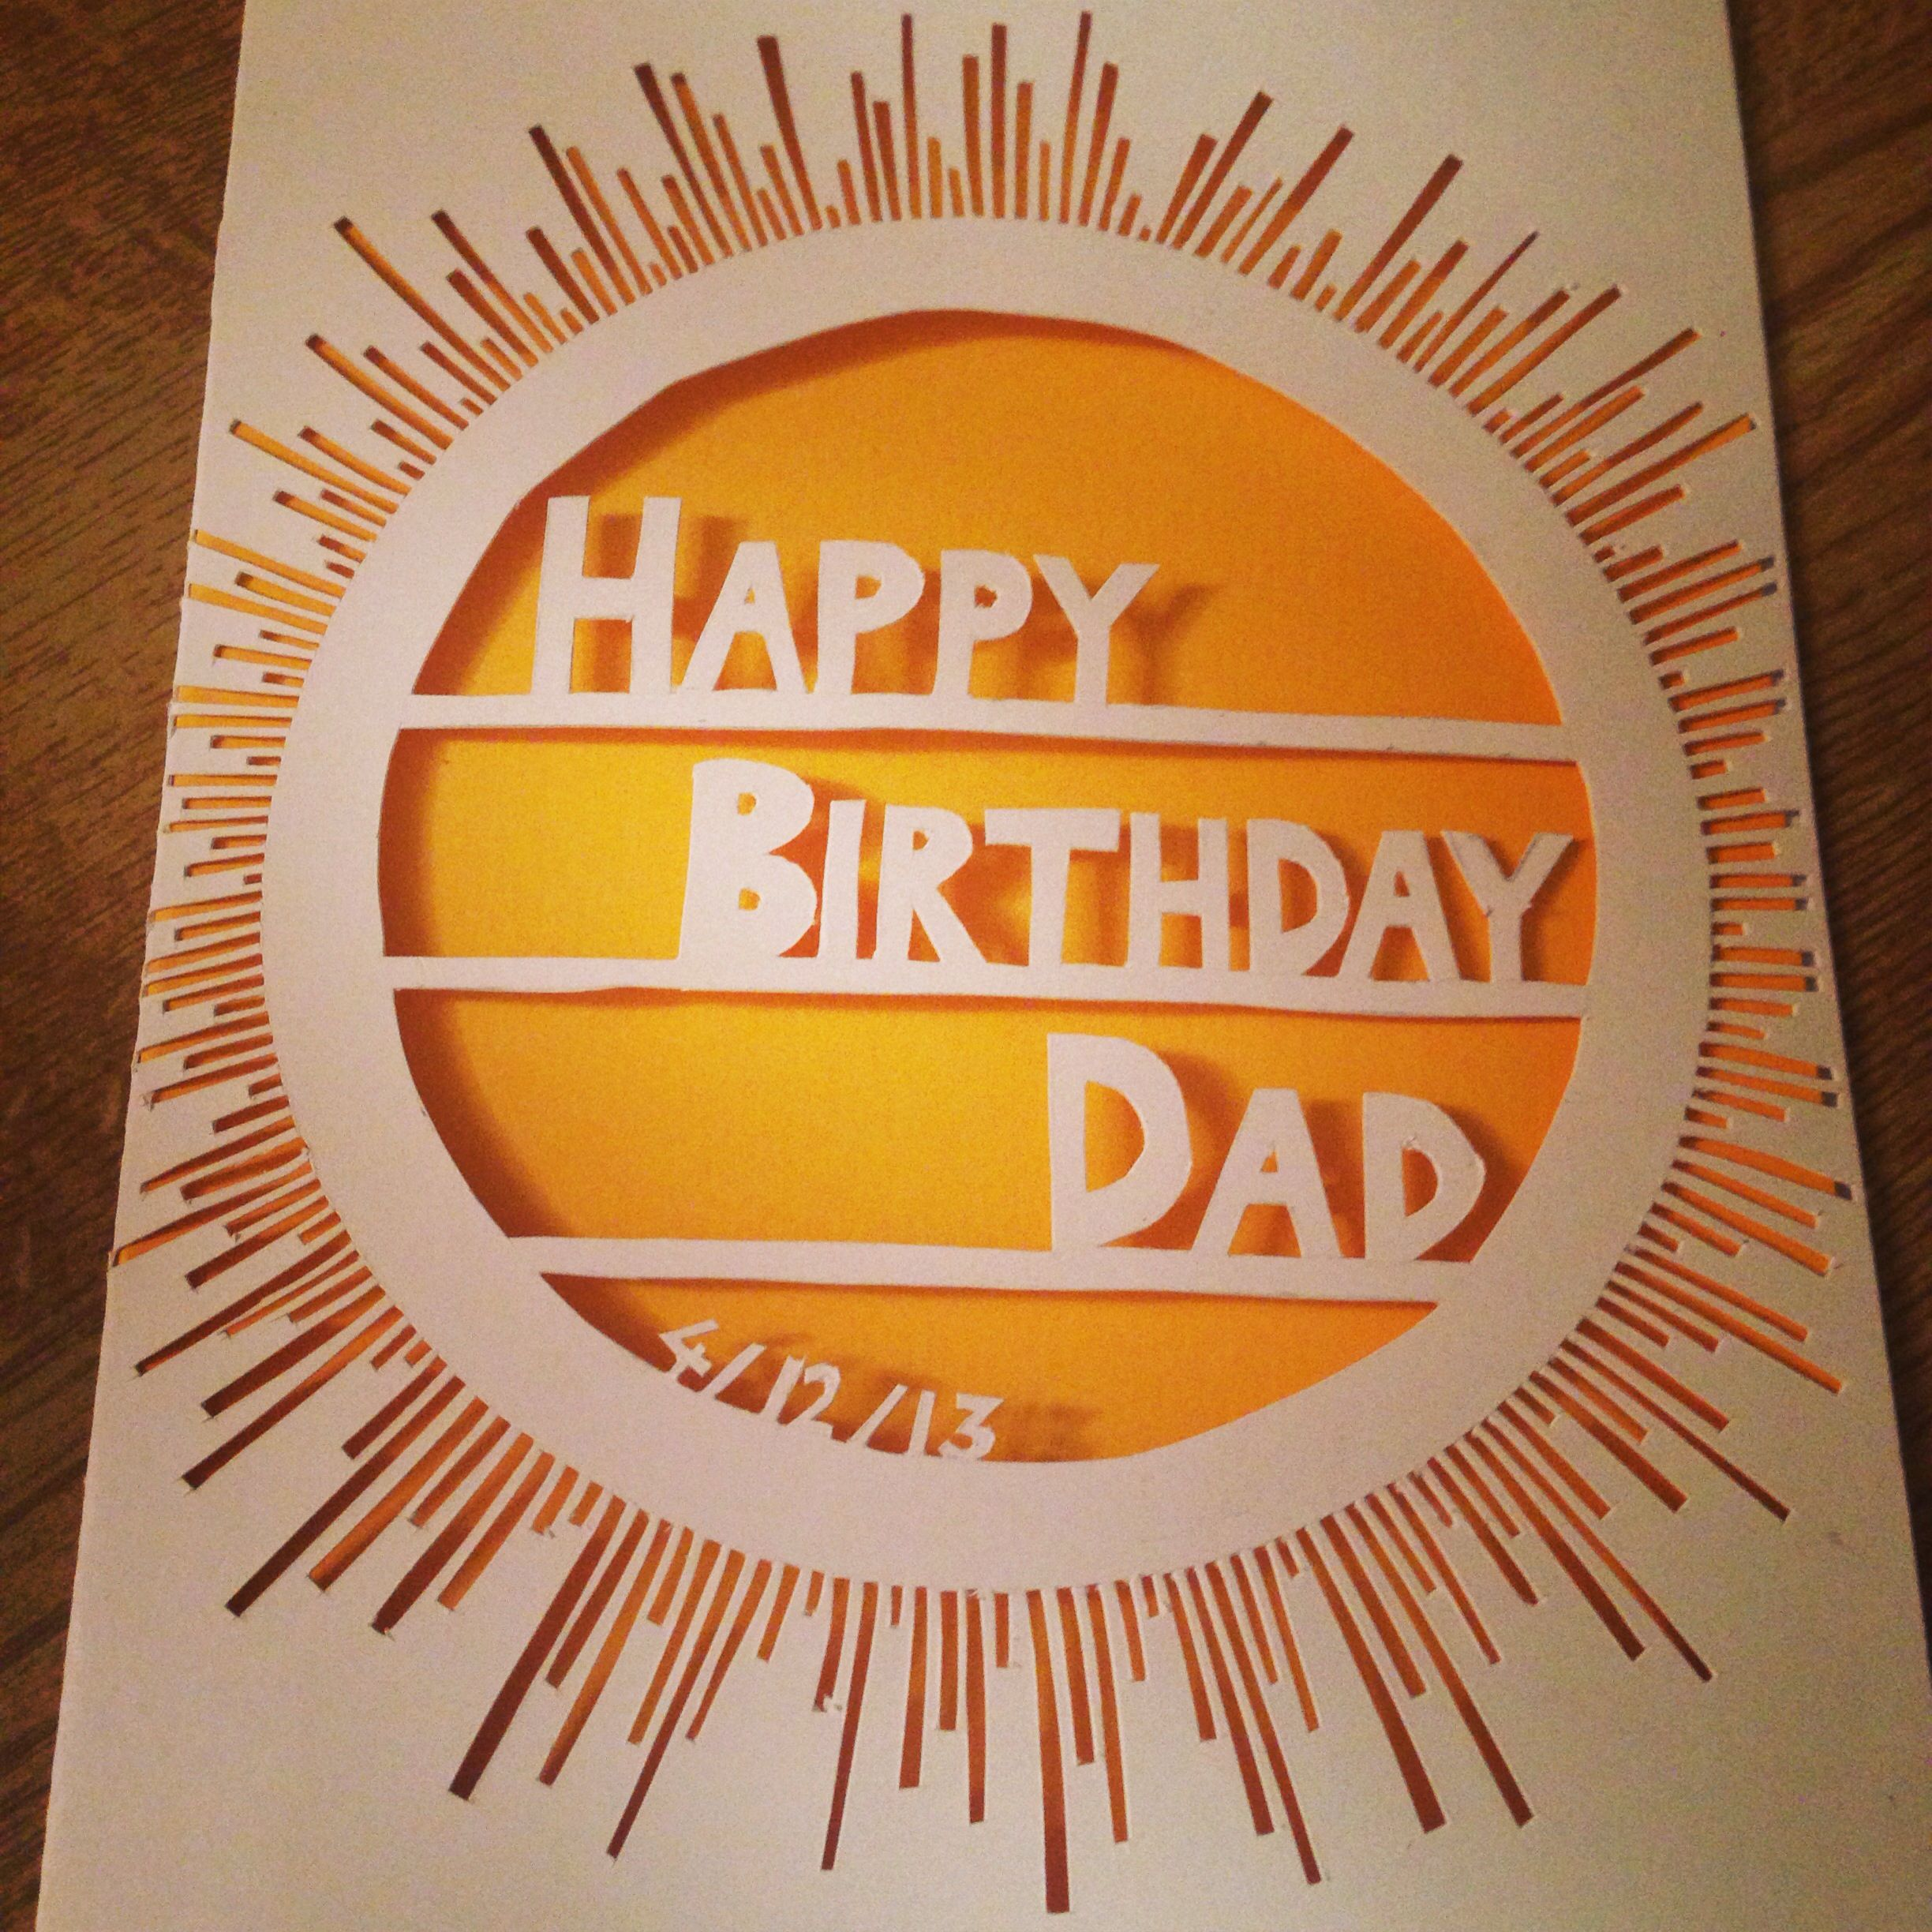 Dads birthday card | Art Ideas | Pinterest | Dad birthday ...